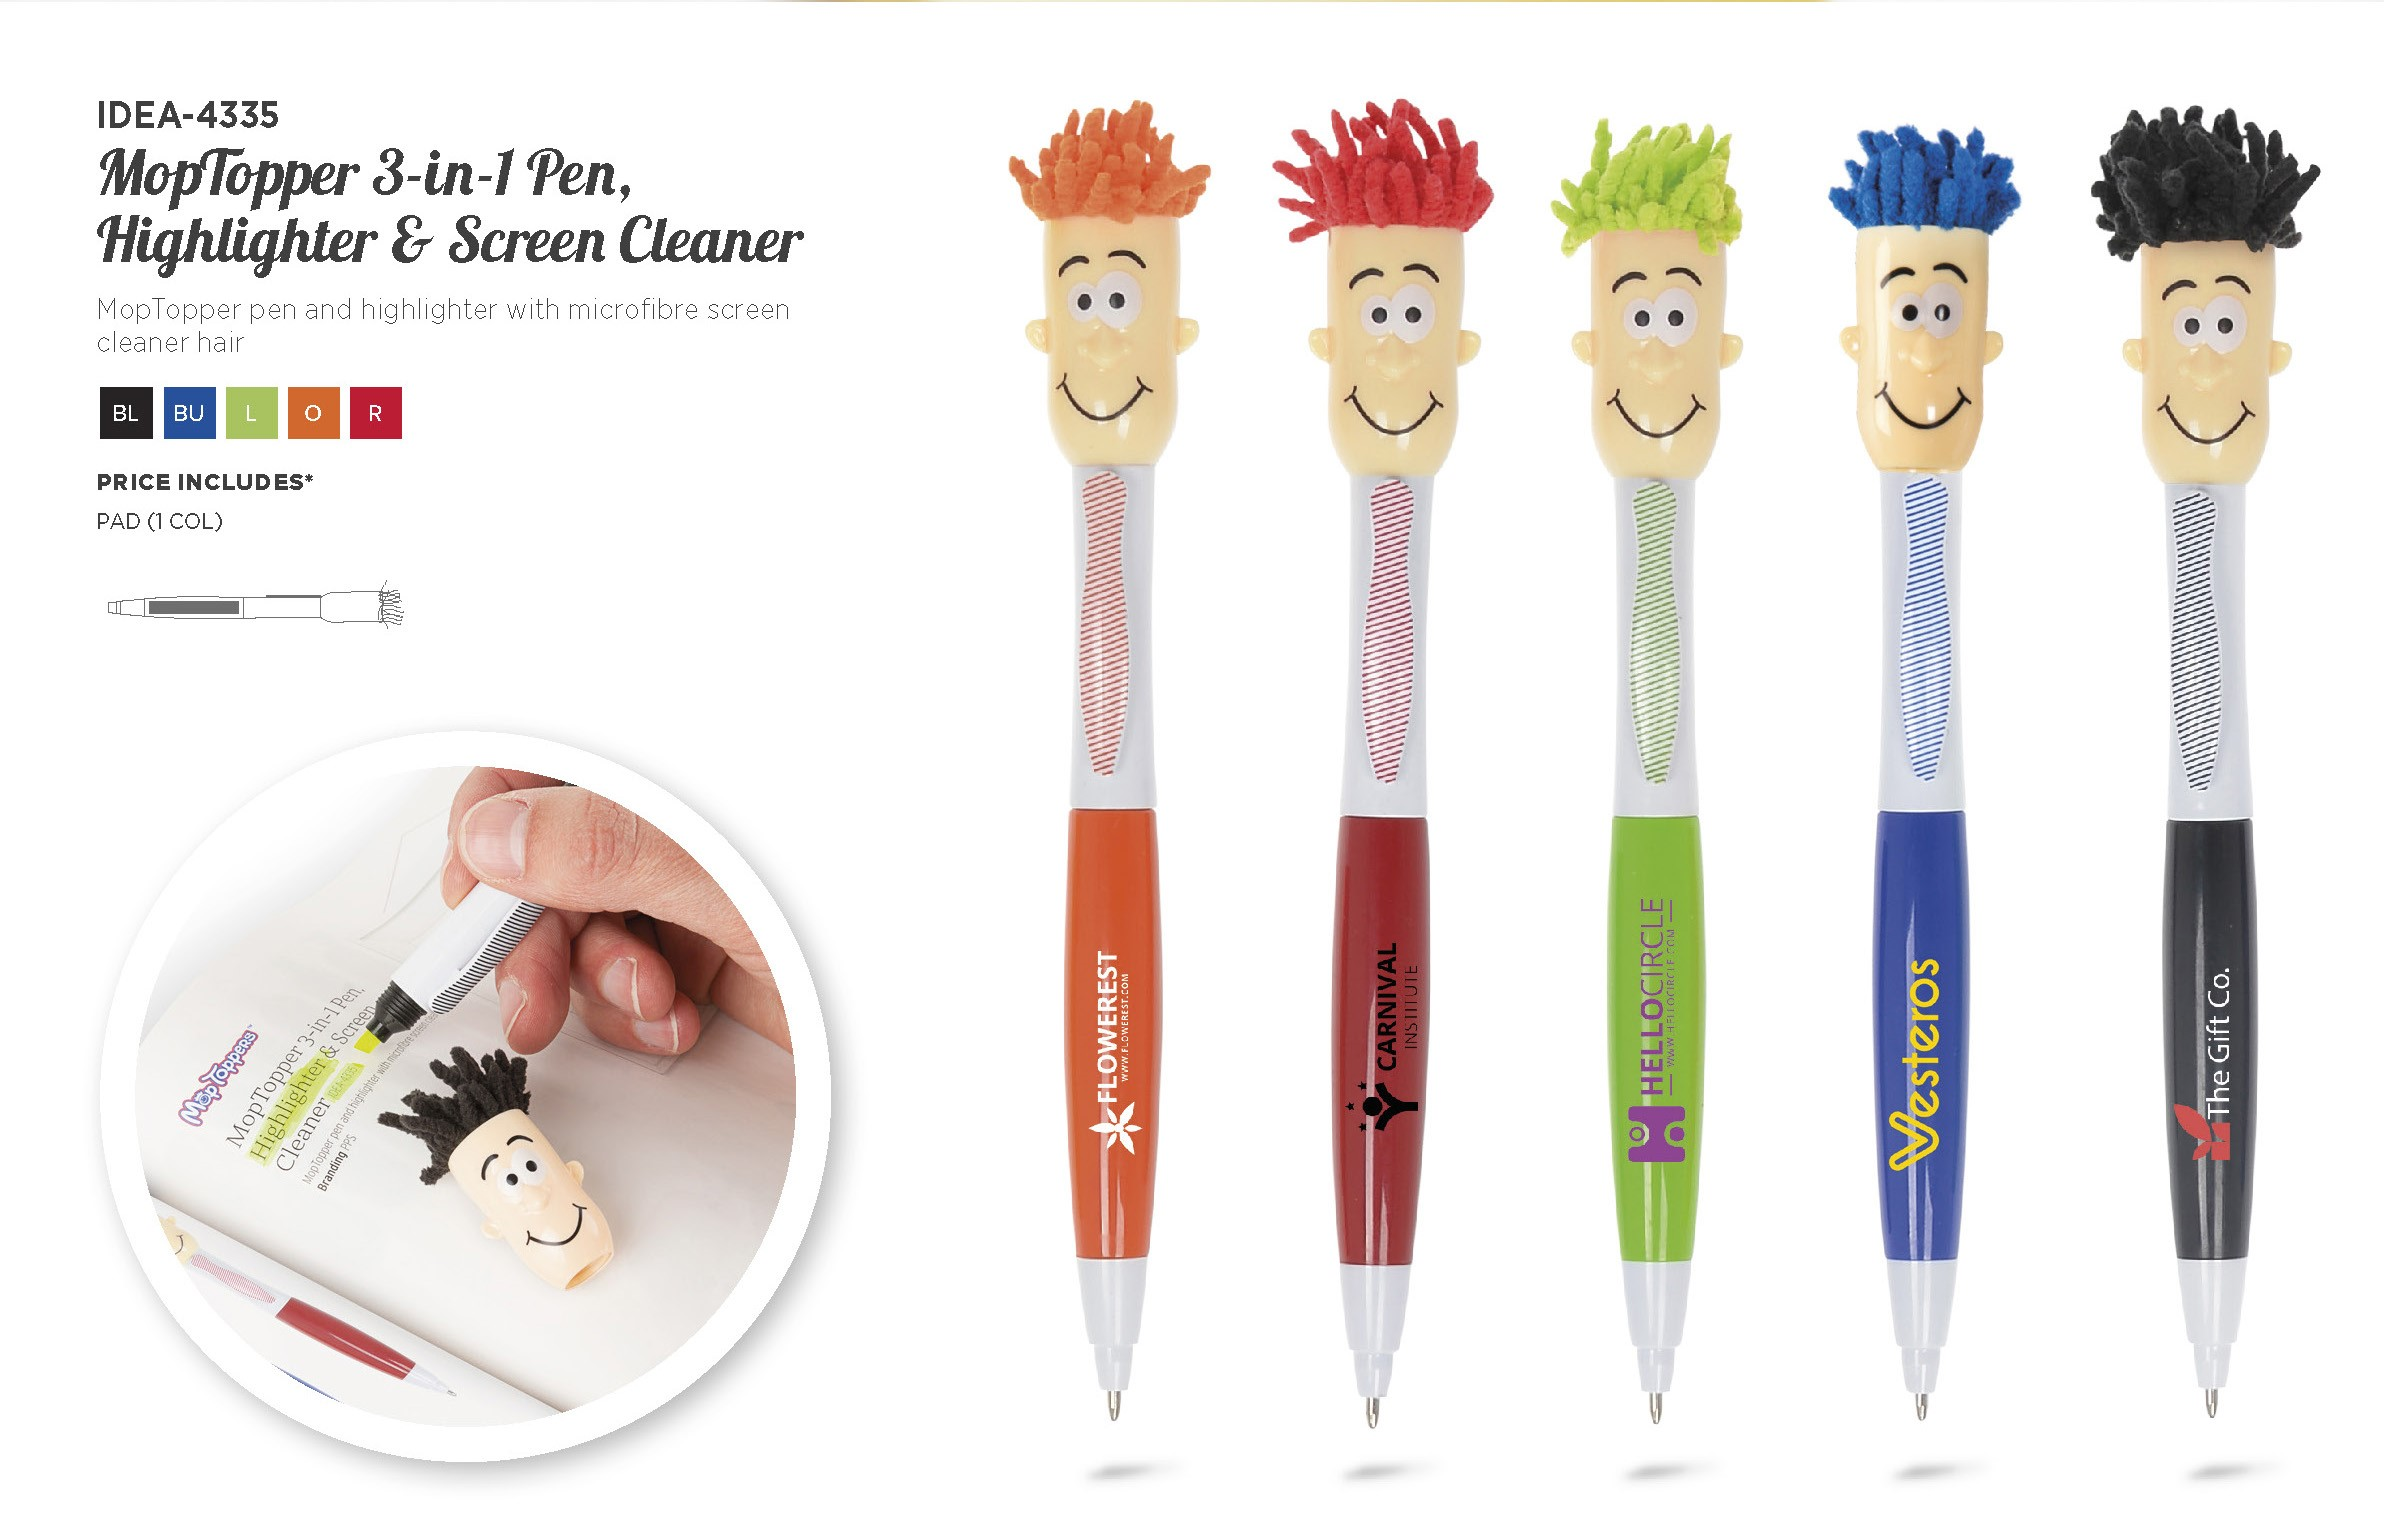 Product: Moptopper 3-In-1 Pen Highlighter